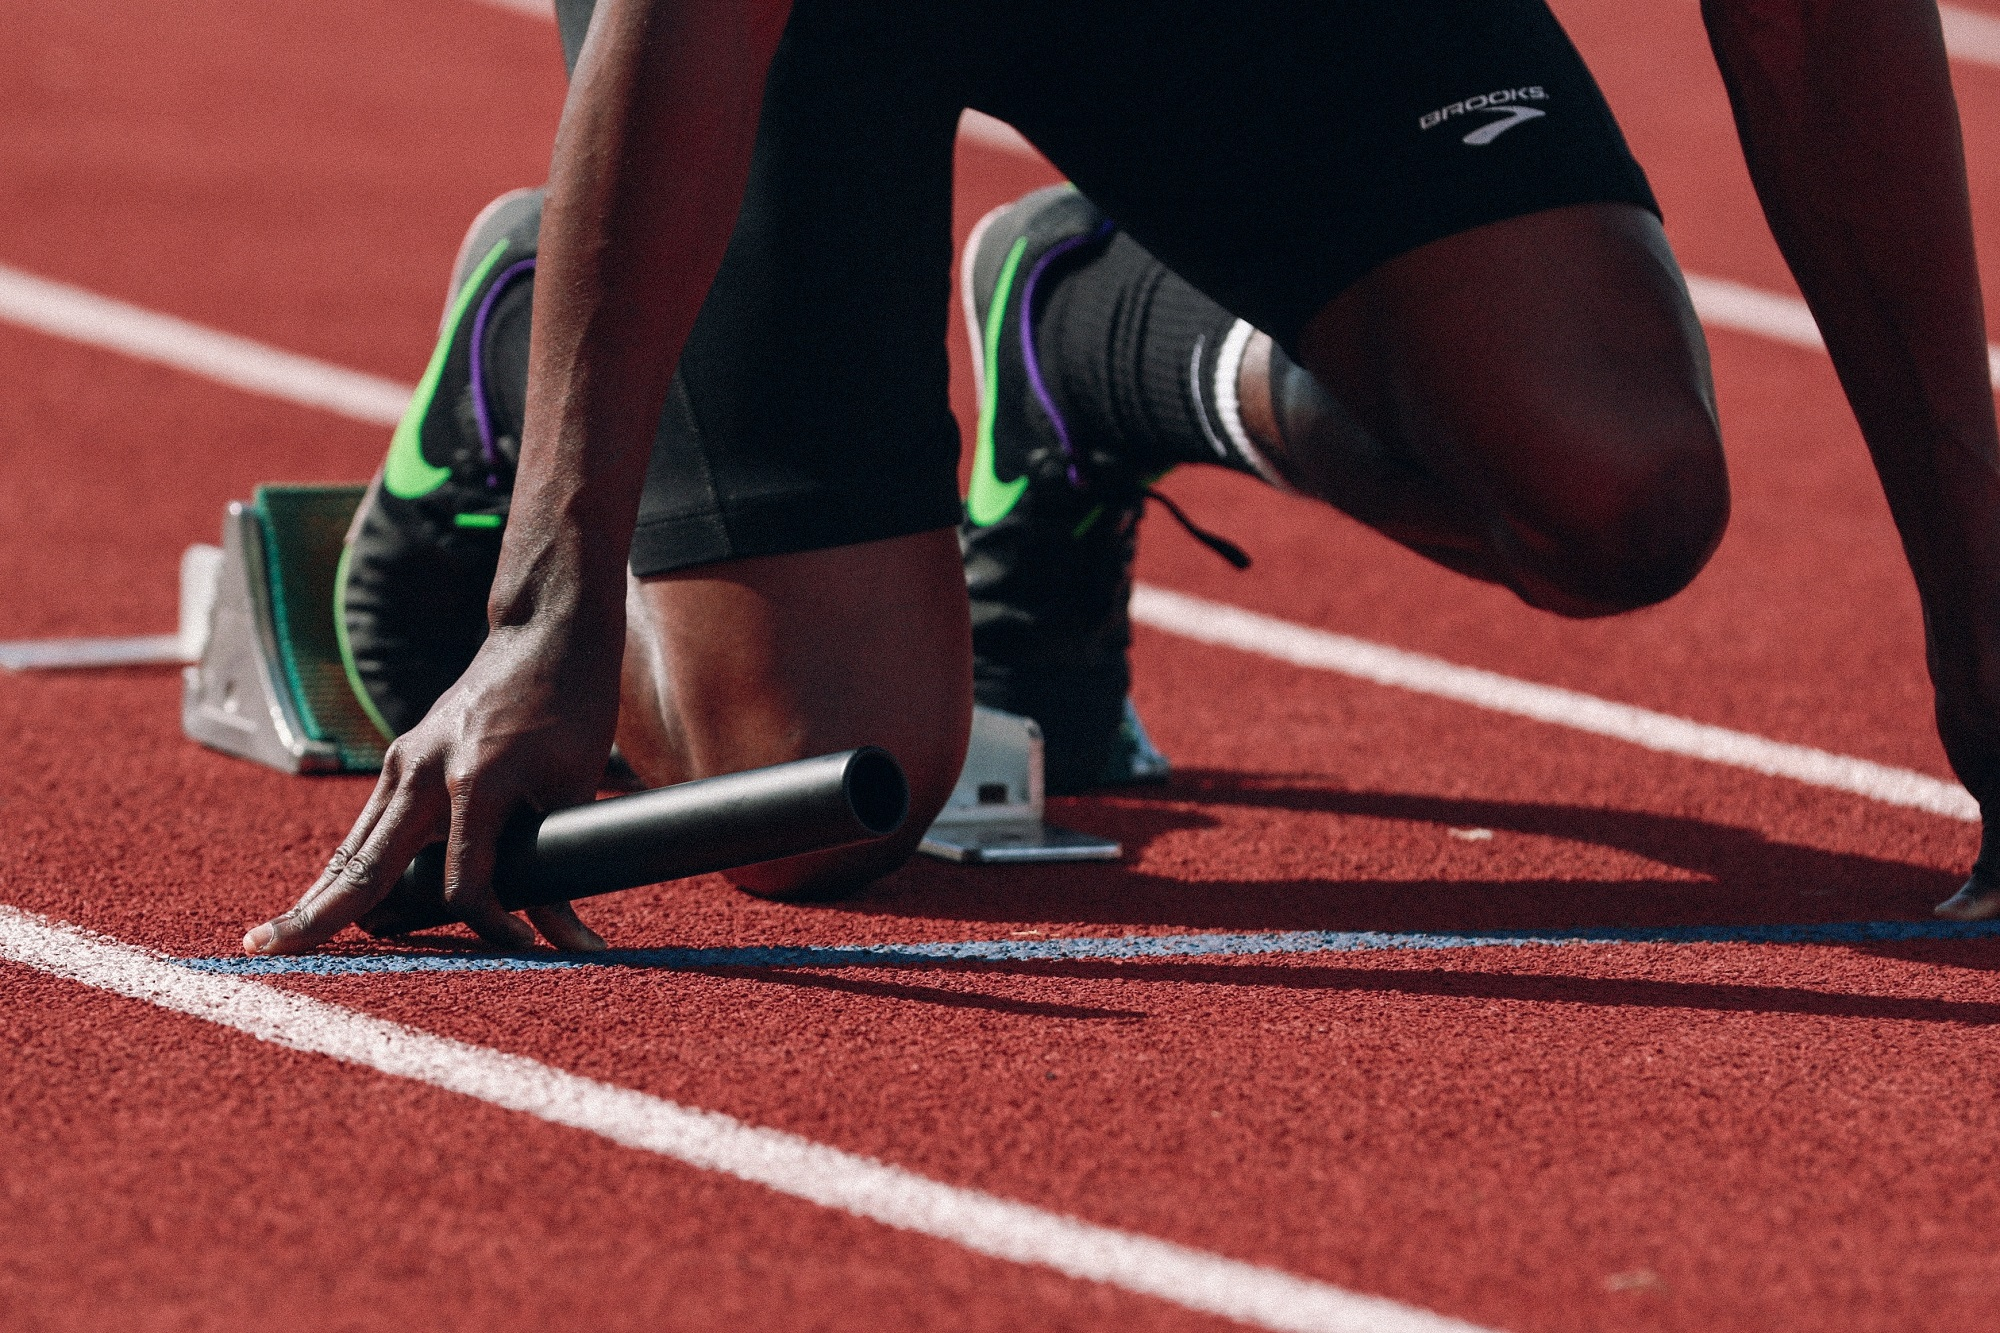 IT band syndrome is a common injury. However, unlike many overuse injuries, it can be quickly solved and even prevented with the right treatment.